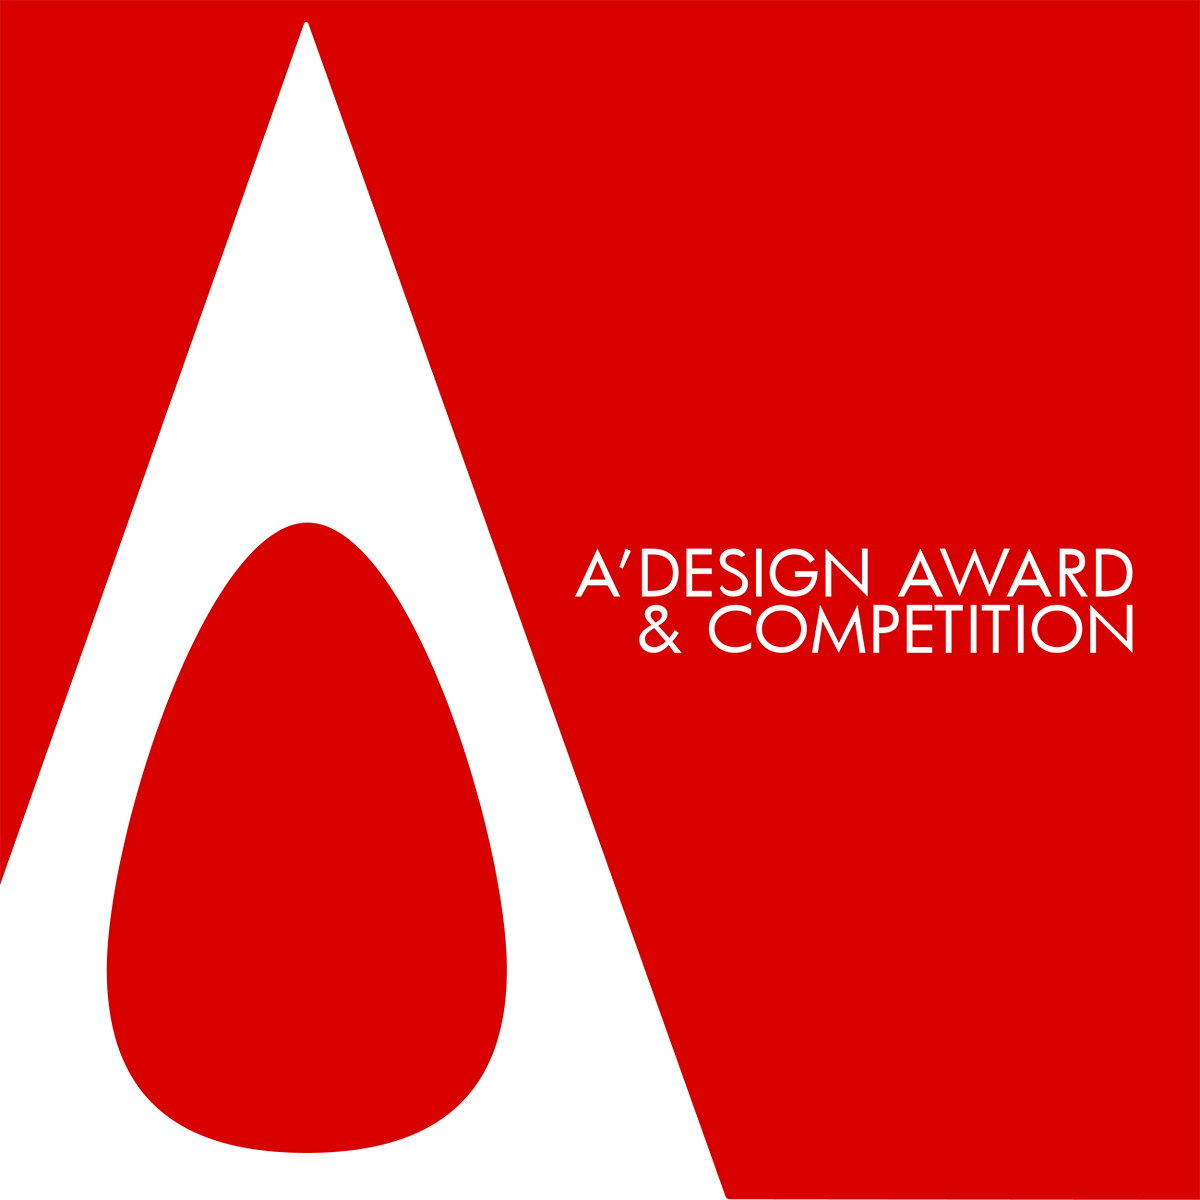 A' Design Award 2017 - Call for Submissions